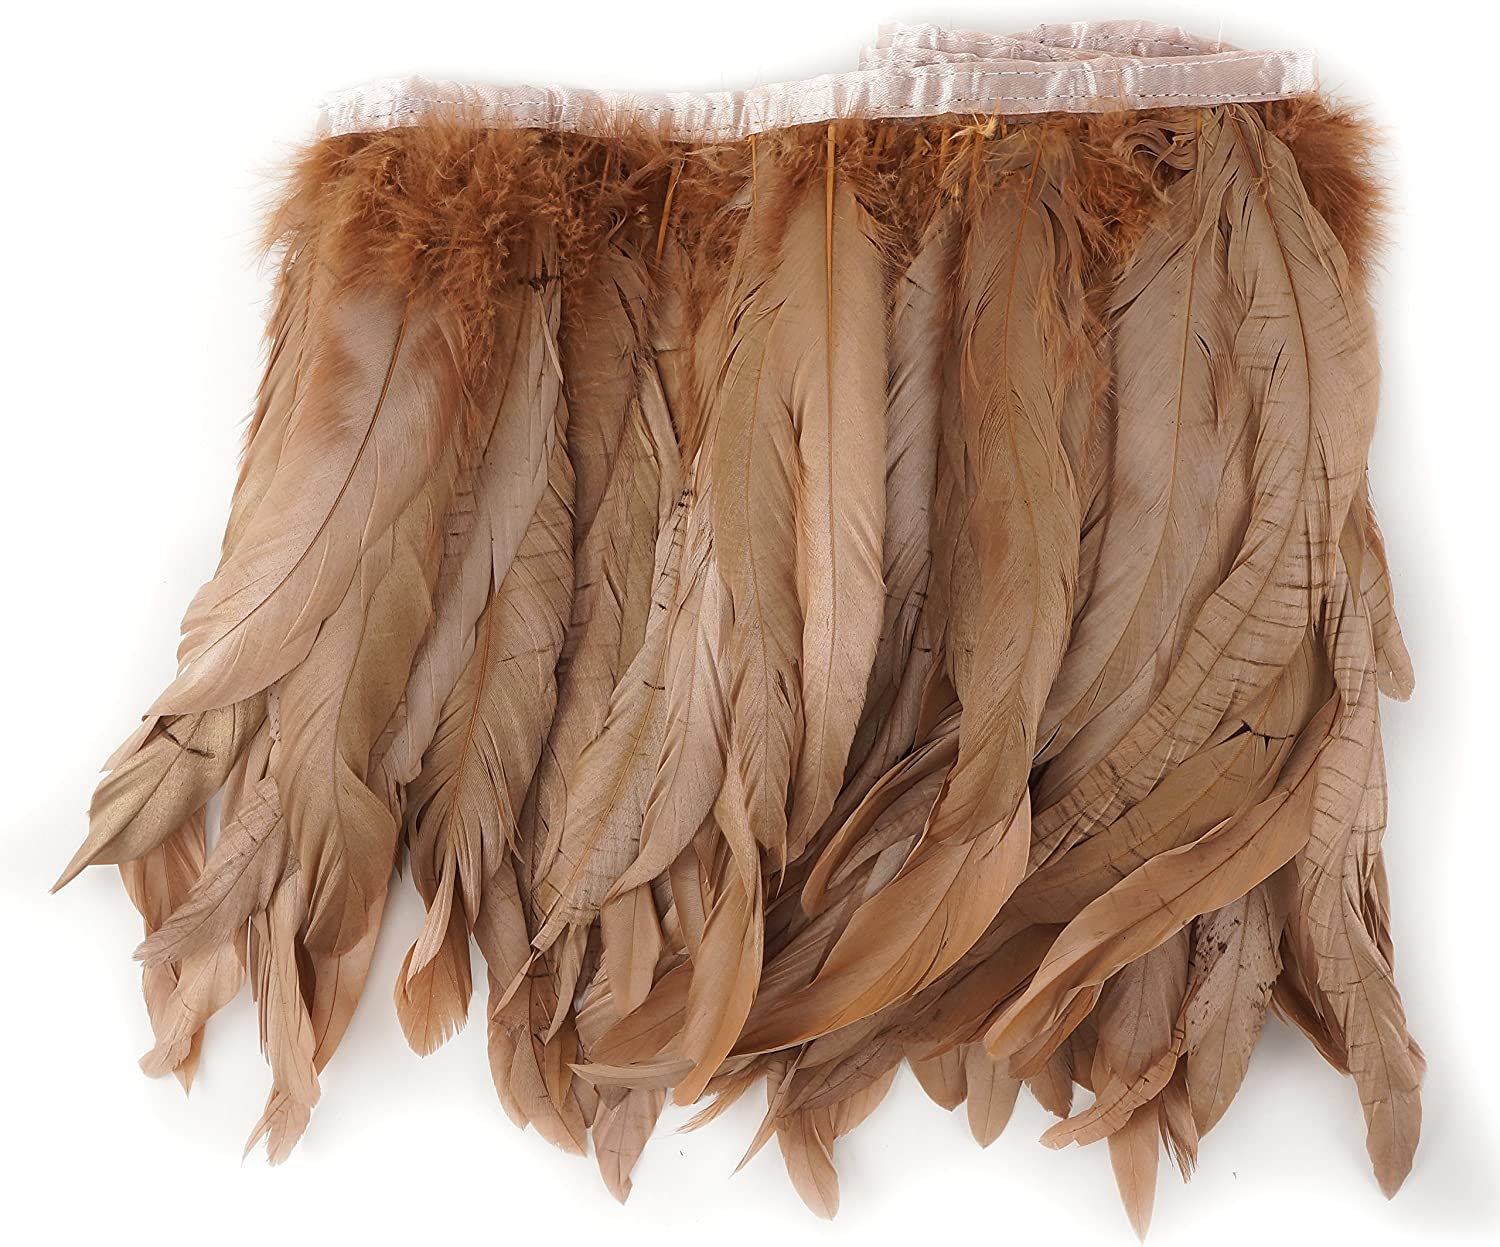 8-10 inch Sewing Craft Supply with Bias Tape Rose Gold ZUCKER 1 Yard Rooster Feather Fringe Trim